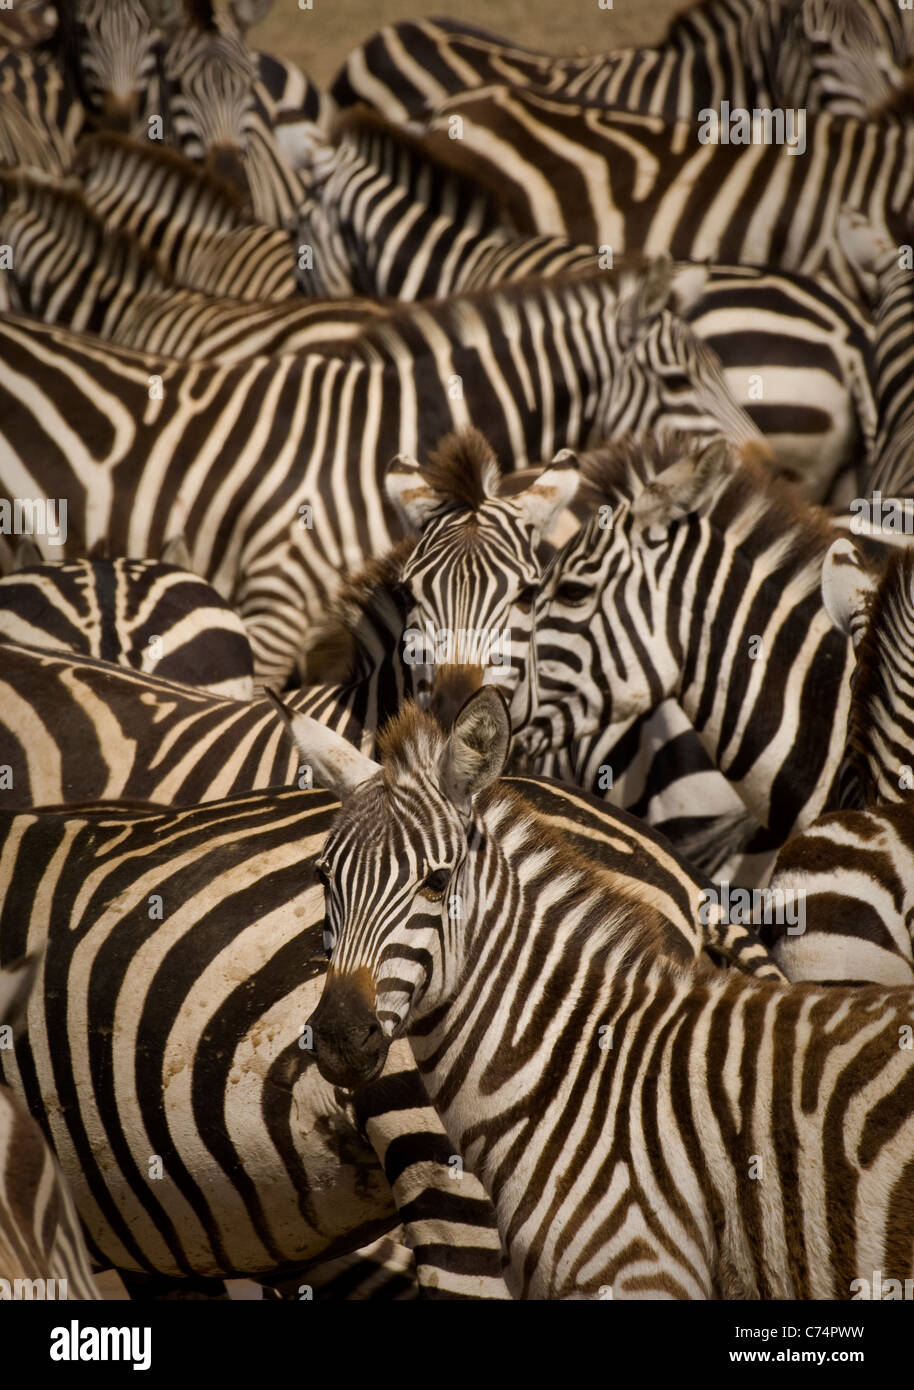 Africa,Tanzania, Serengeti-Burchell's zebras crowded together in waterhole - Stock Image